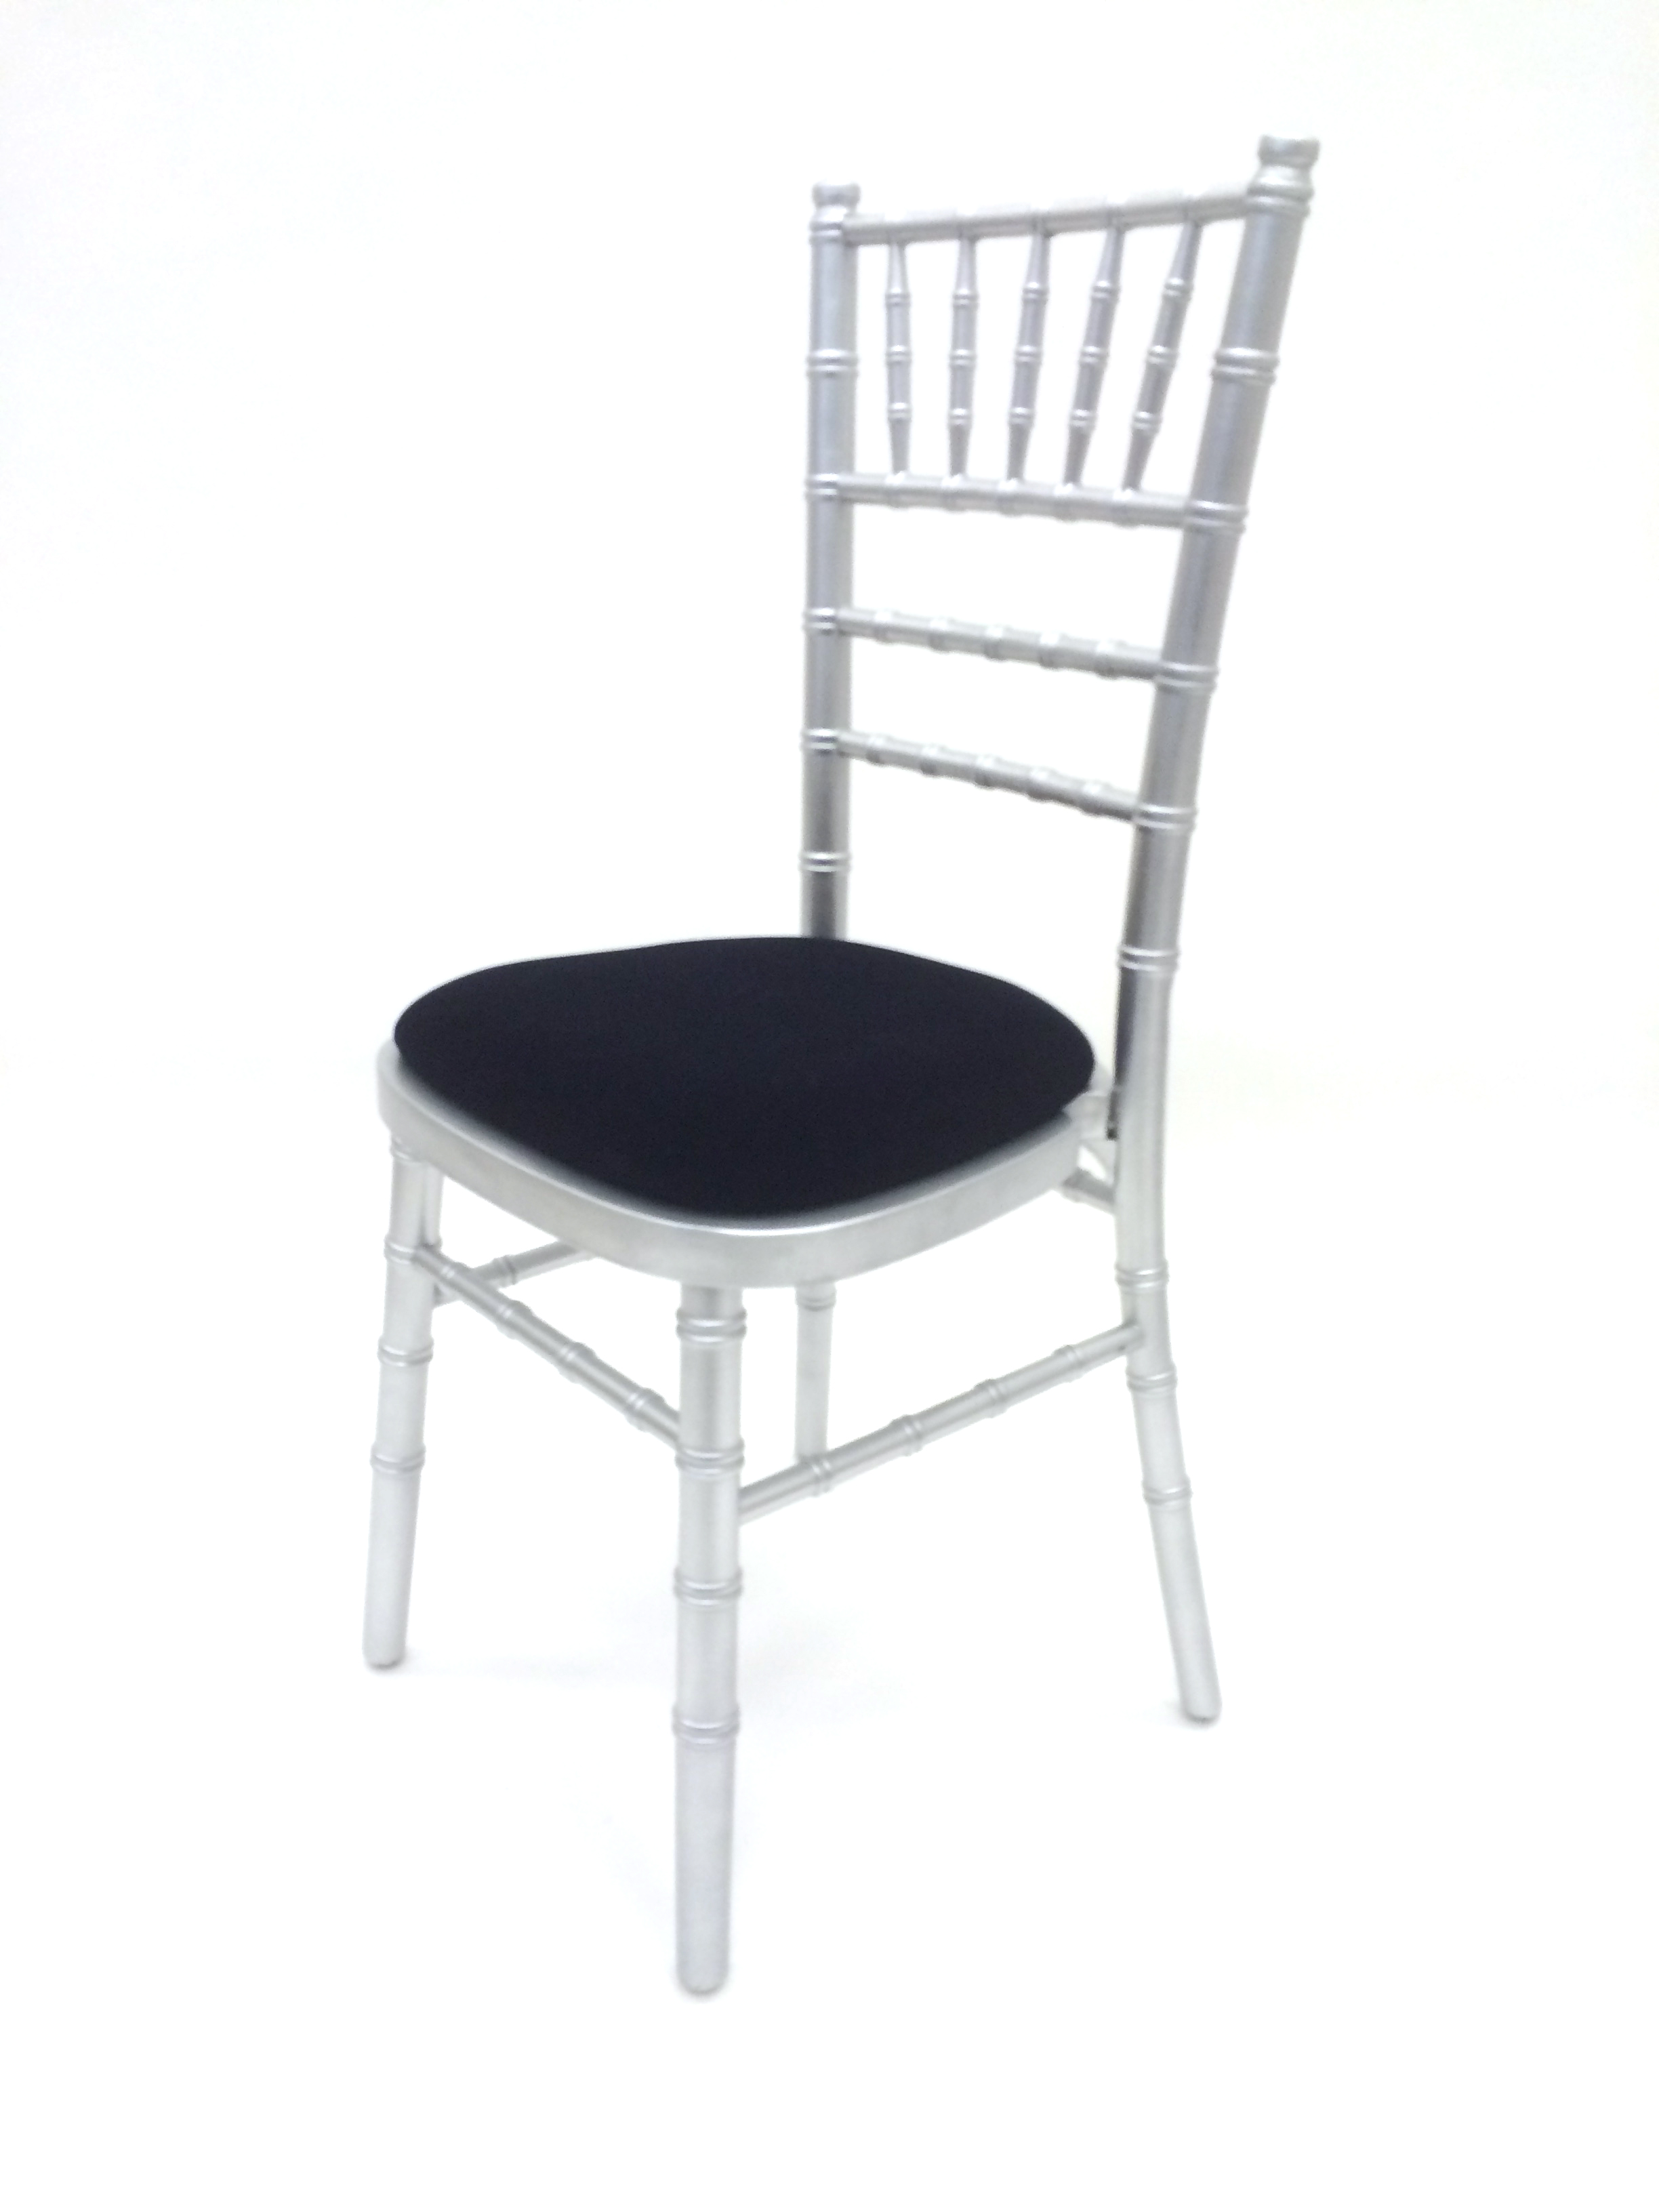 Silver Chiavari Chair Hire - Choice of Seat Pad Colours - BE Event Hire